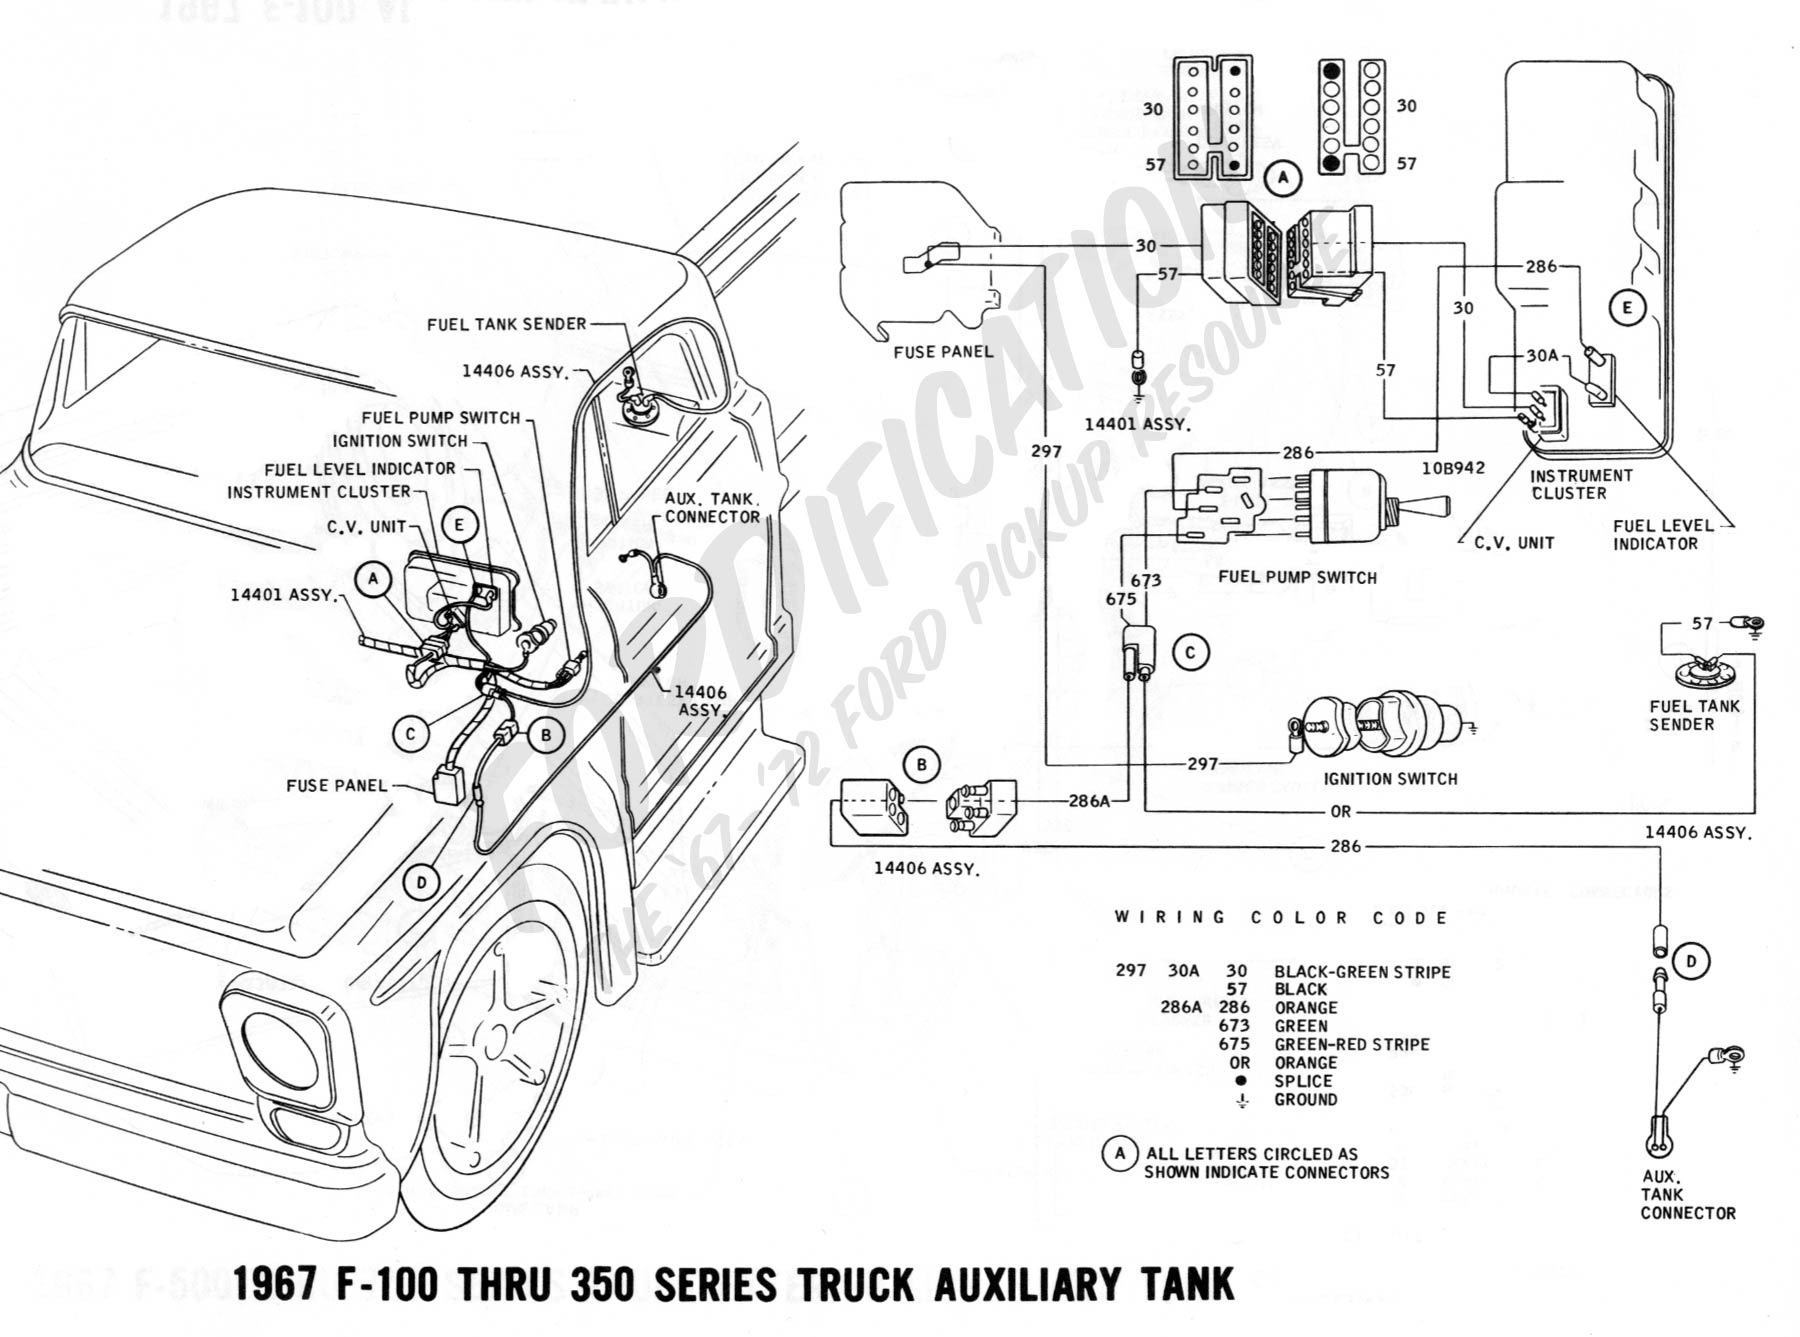 ford truck technical drawings and schematics section h wiring diagrams 1993 Ford F -150 Wiring Diagram 1993 Ford F -150 Wiring Diagram